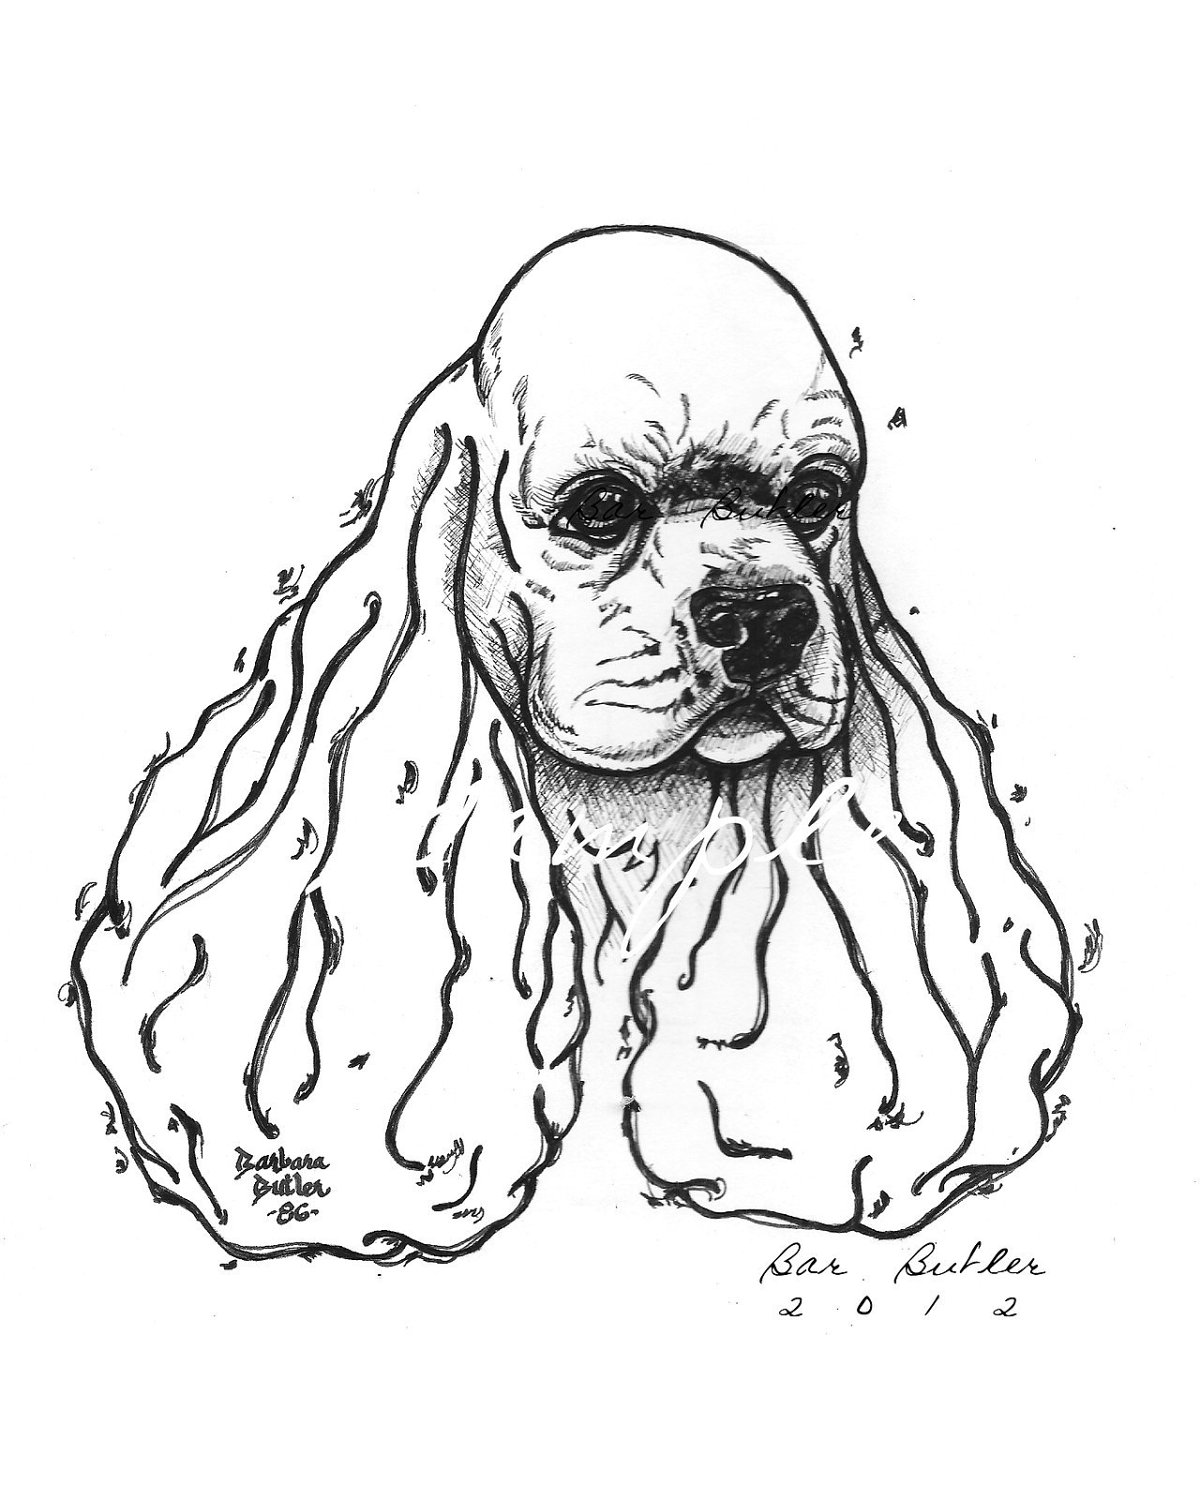 childrens coloring pages springer spaniel | Cocker Spaniel Drawing at GetDrawings.com | Free for ...